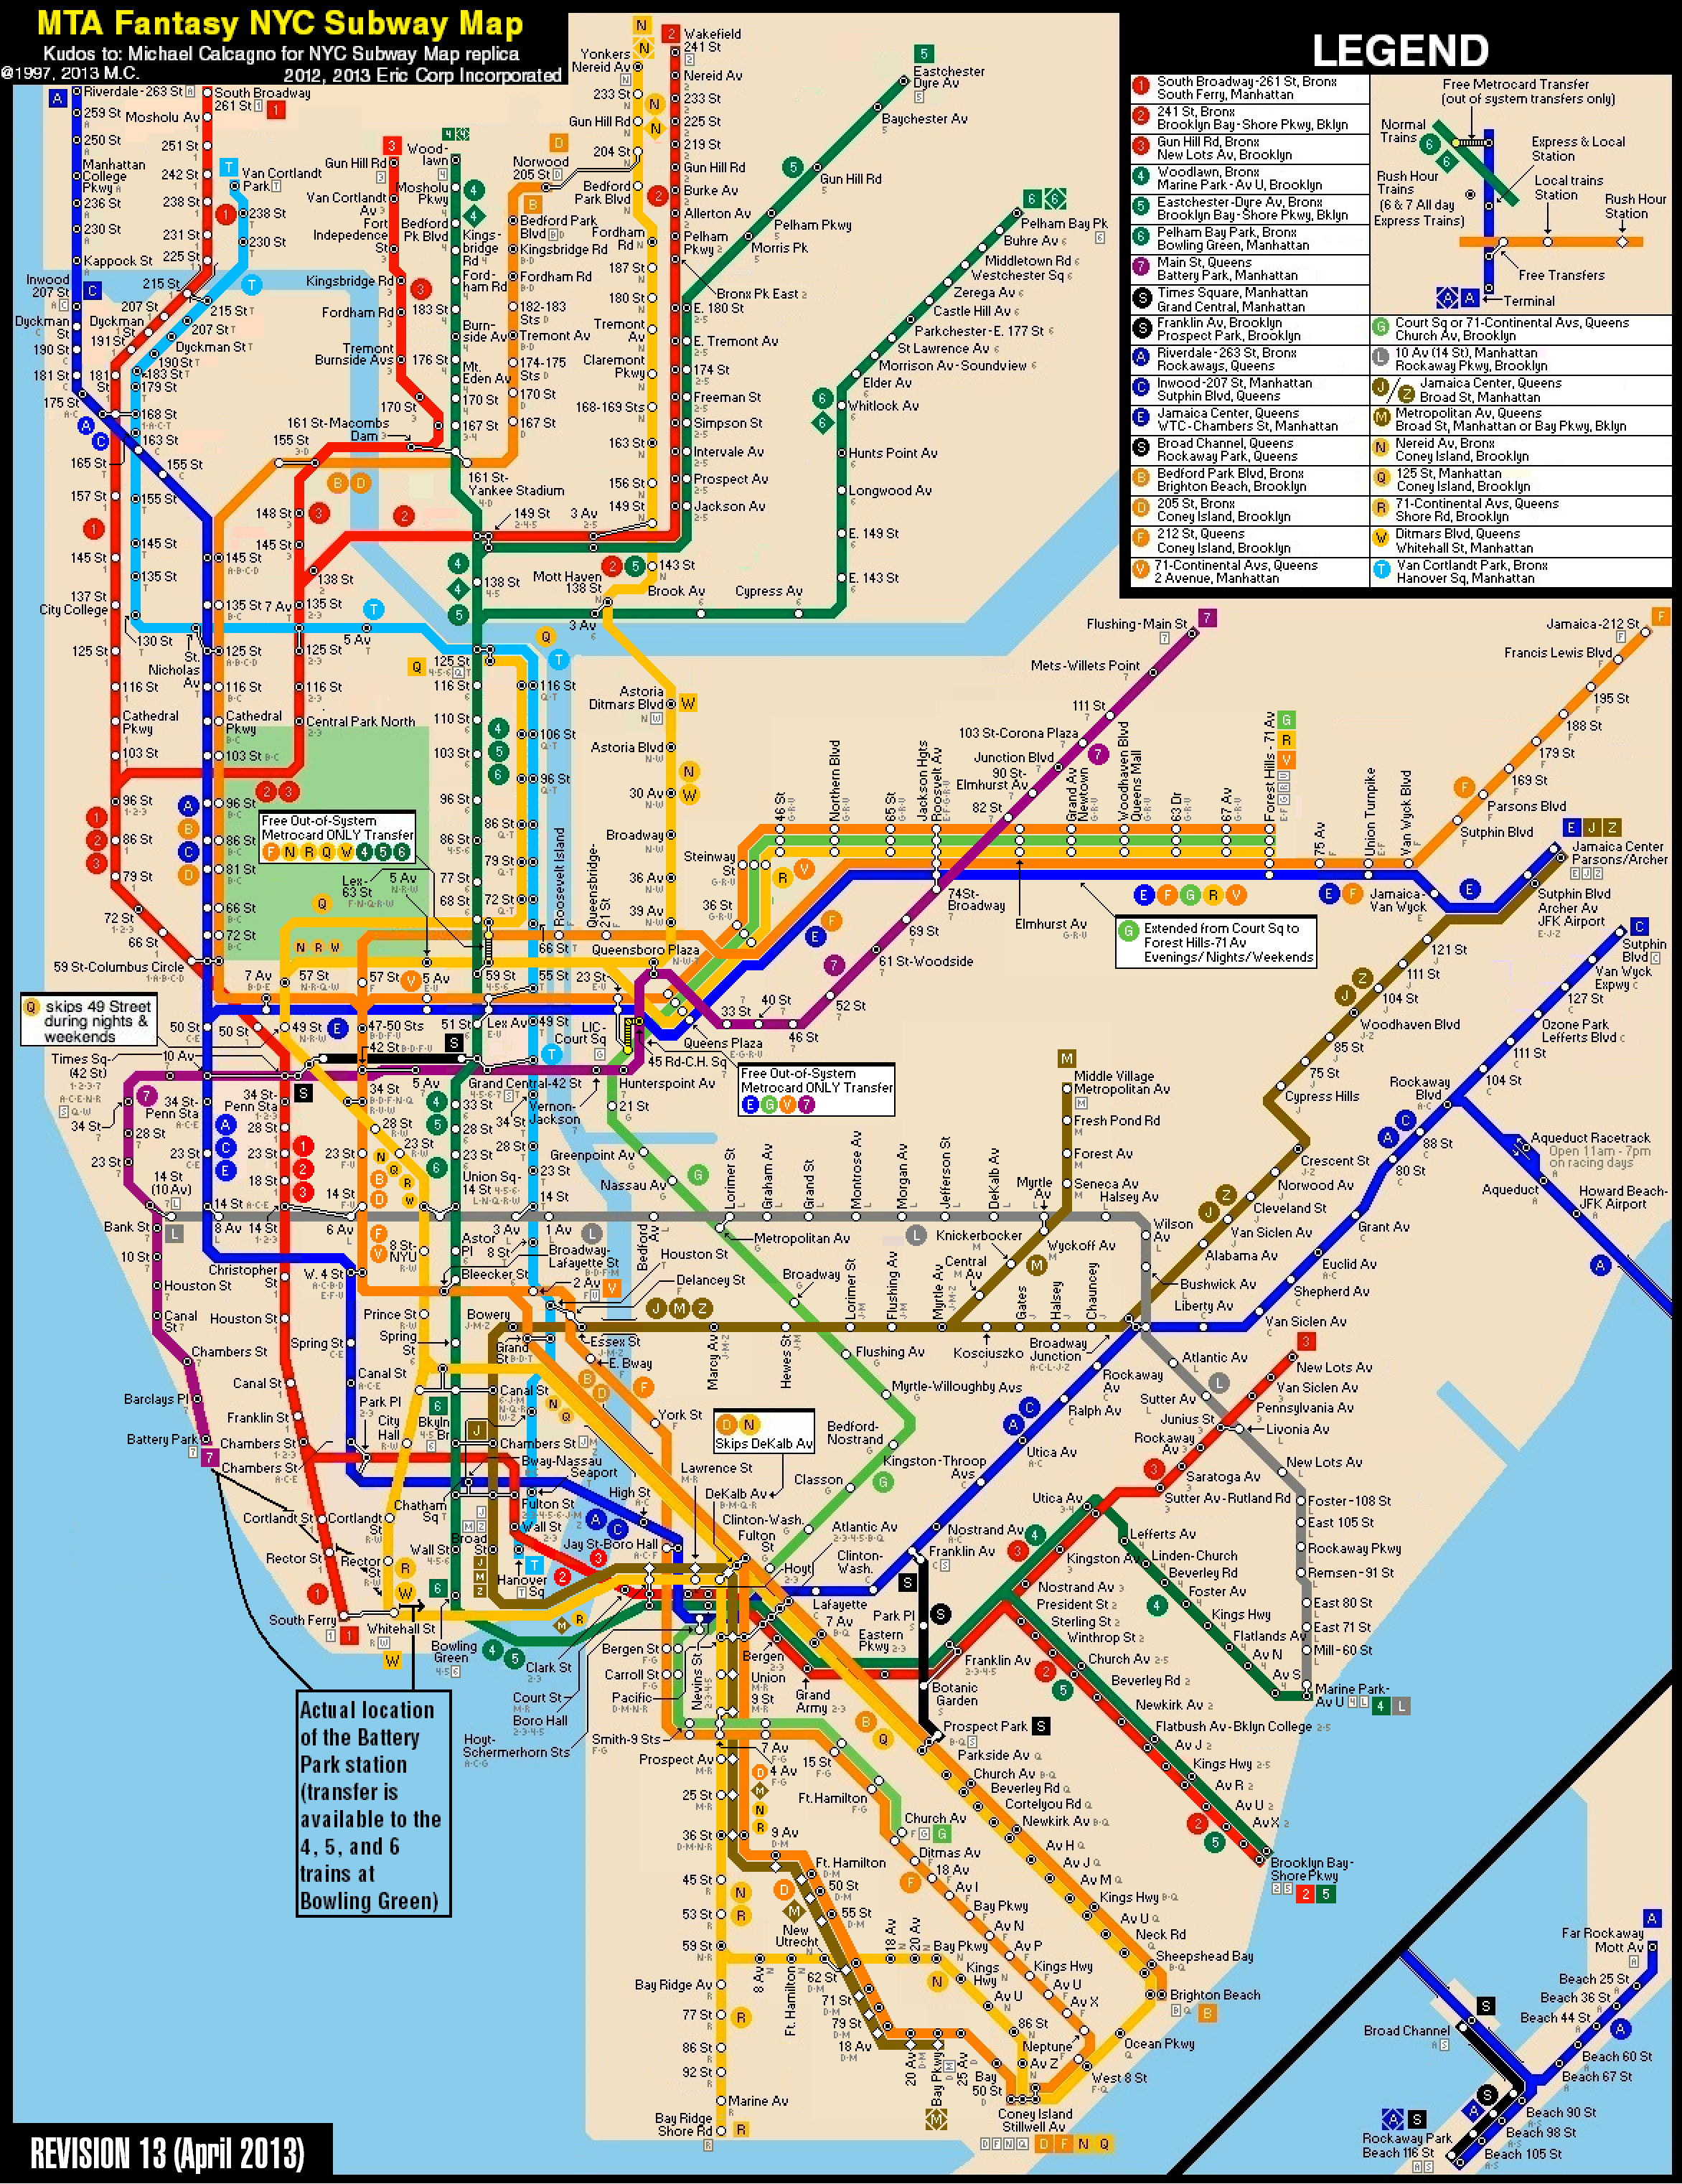 Train Subway Map New York.New York Subway Map New York City Subway Fantasy Map Revision 13